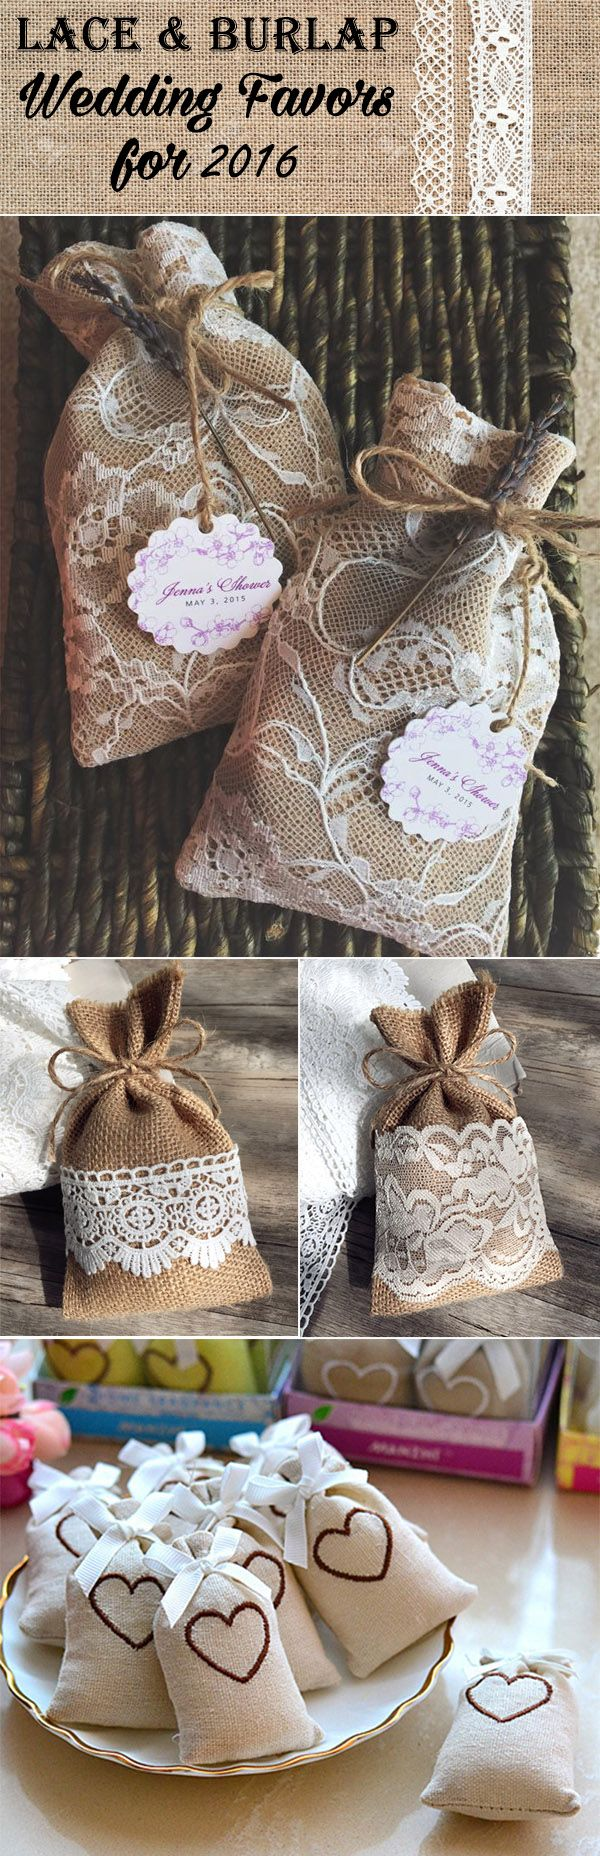 Top 20 Country Rustic Lace and Burlap Wedding Ideas (Including Invitations and…